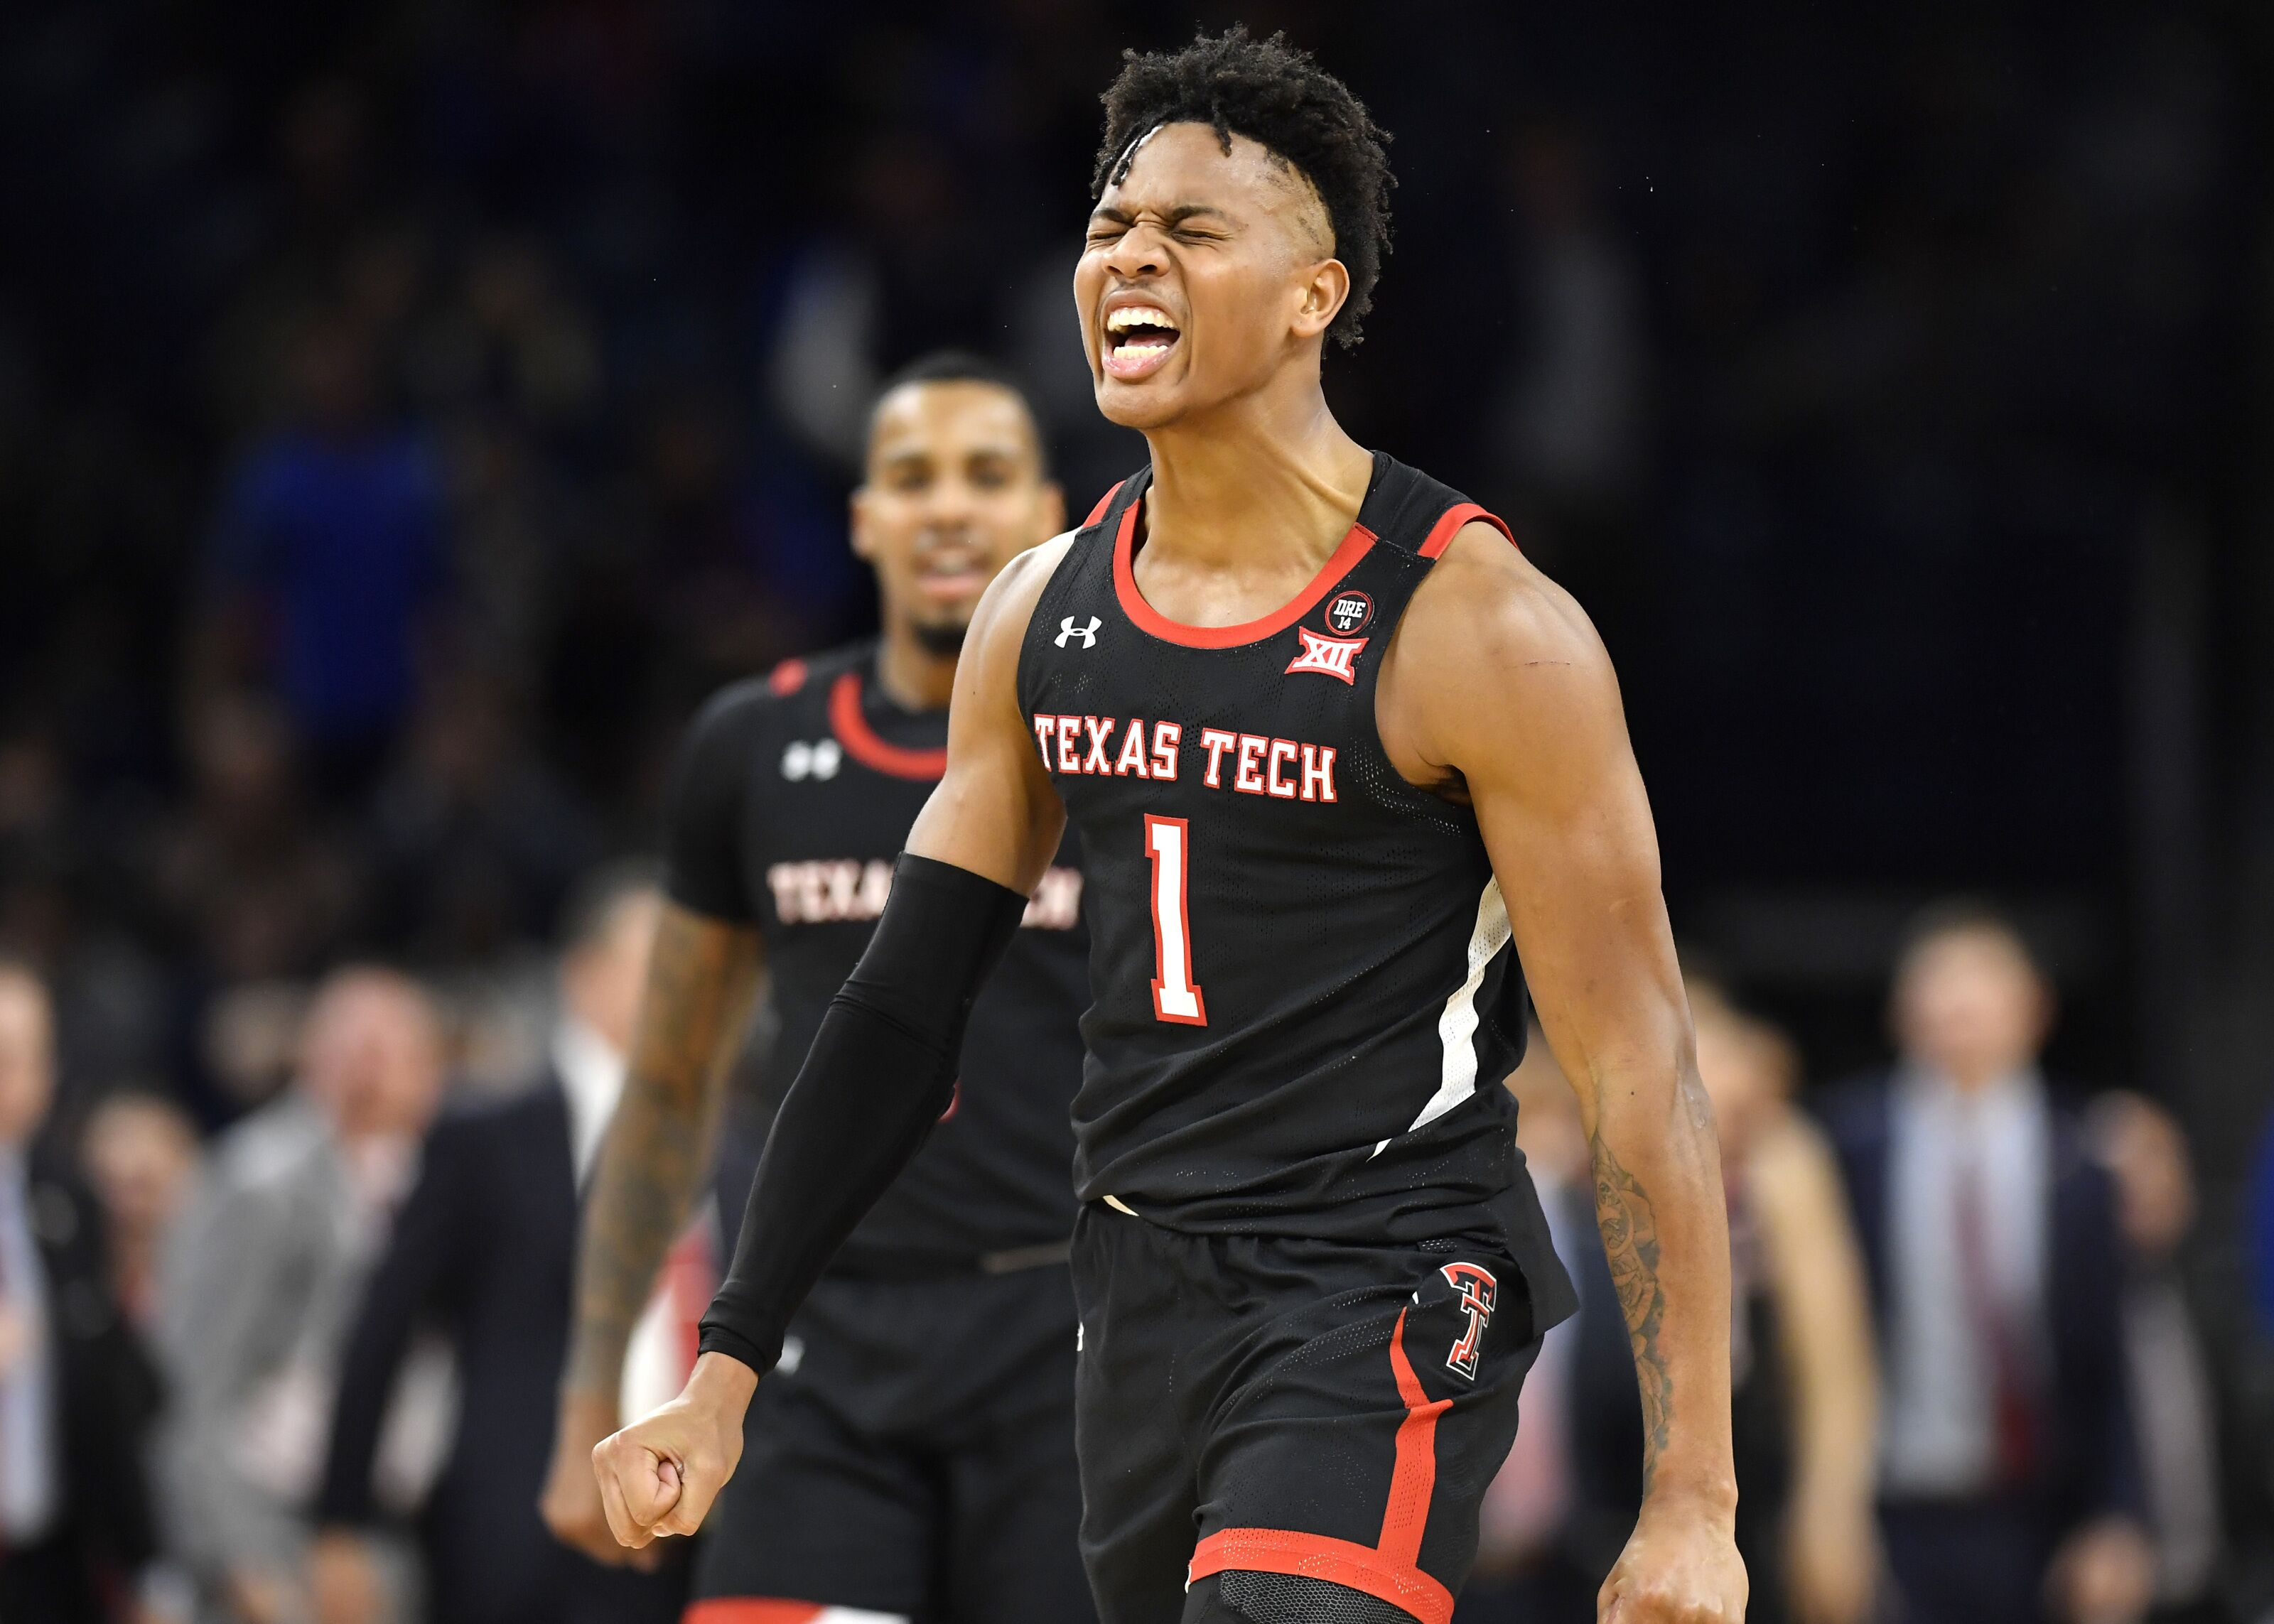 Texas Tech vs. West Virginia: 2019-20 college basketball preview, TV schedule